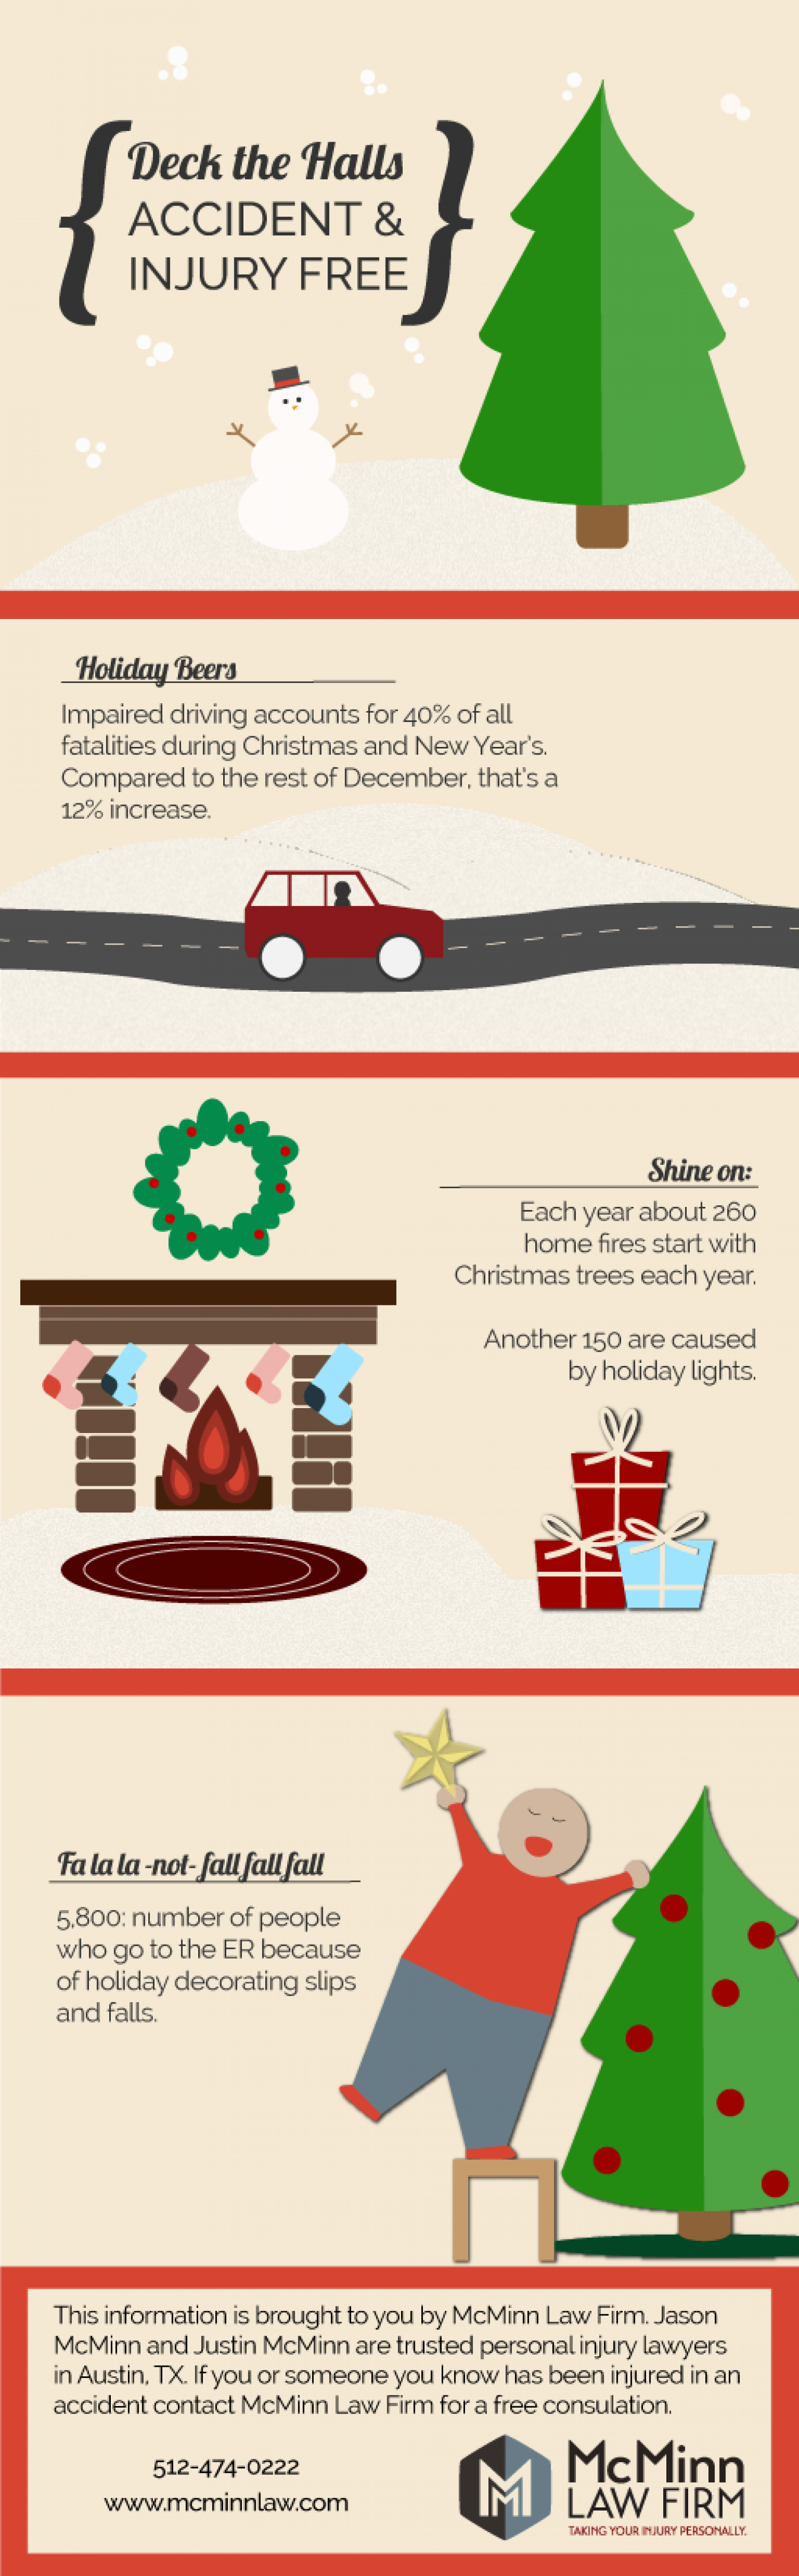 Deck the Halls Injury and Accident Free Infographic